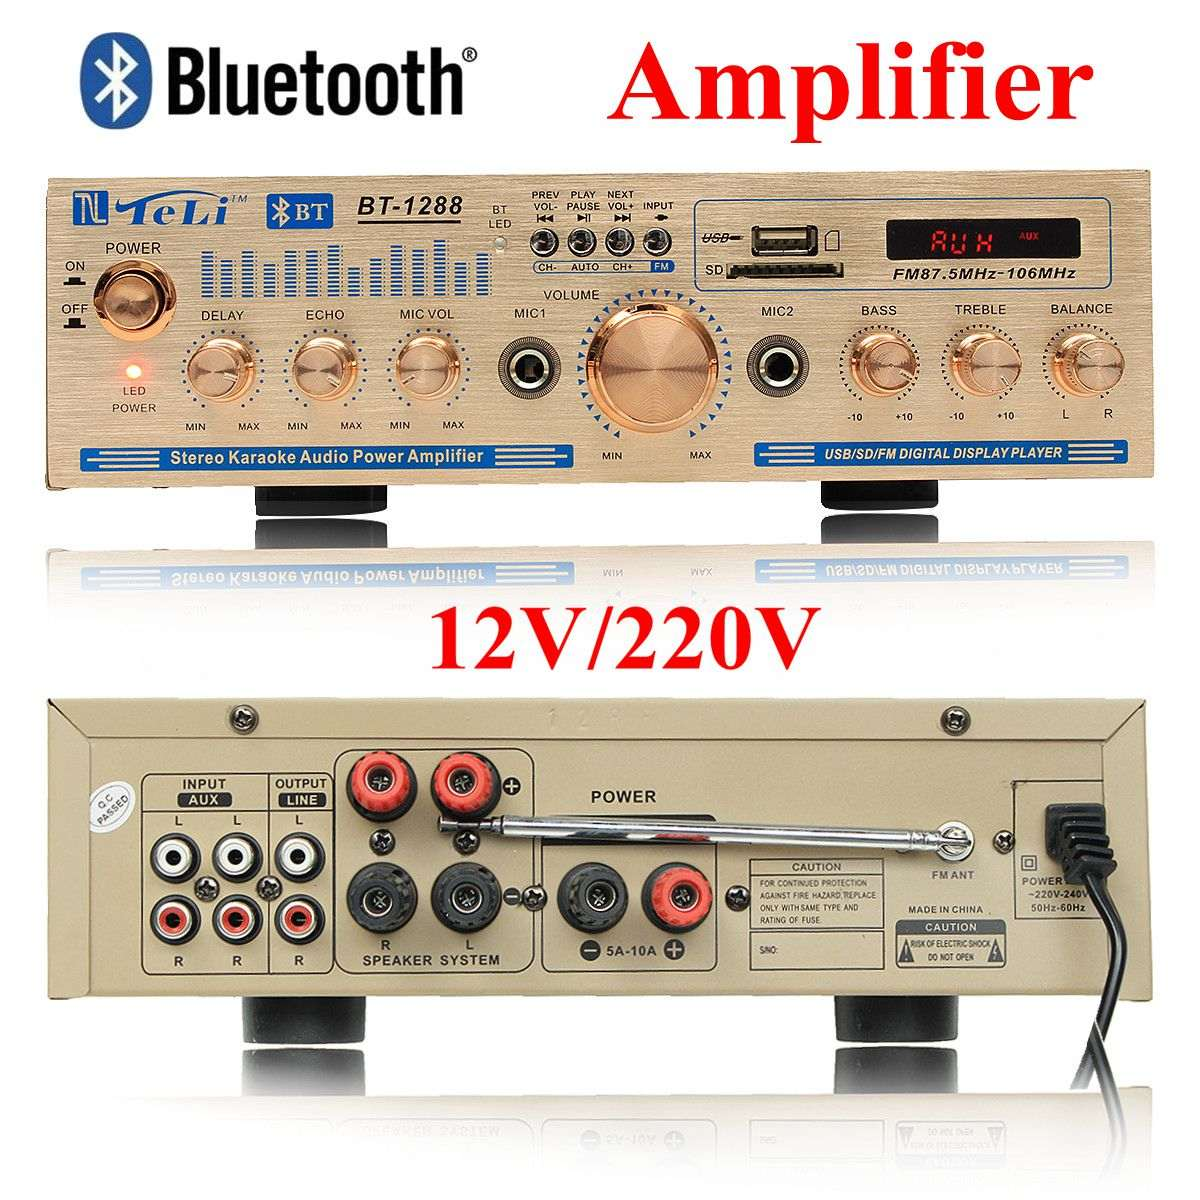 2100w Amplifier Bluetooth 12v 220v Stereo Audio For Car 5000w High Power Circuit Electronic Design Home 2ch With Card Radio Dc In Multichannel Amplifiers From